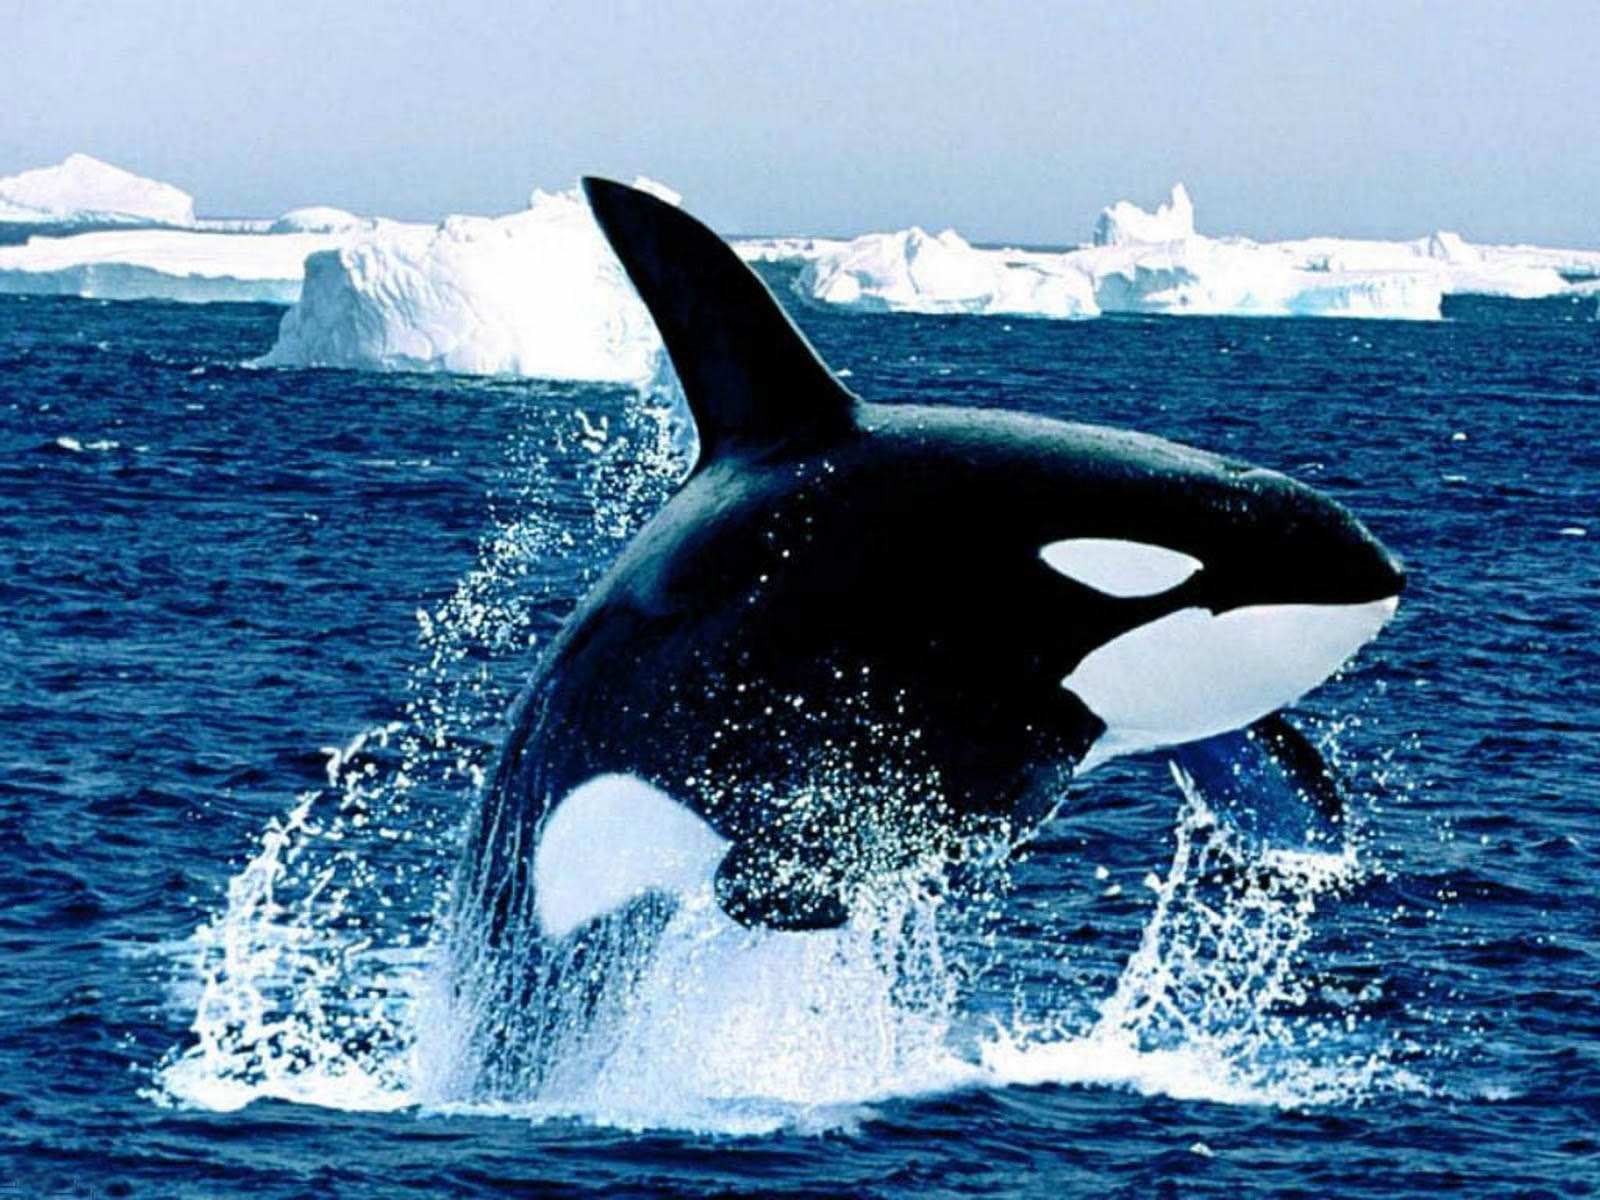 Orca Whales Images HD Wallpaper And Background Photos